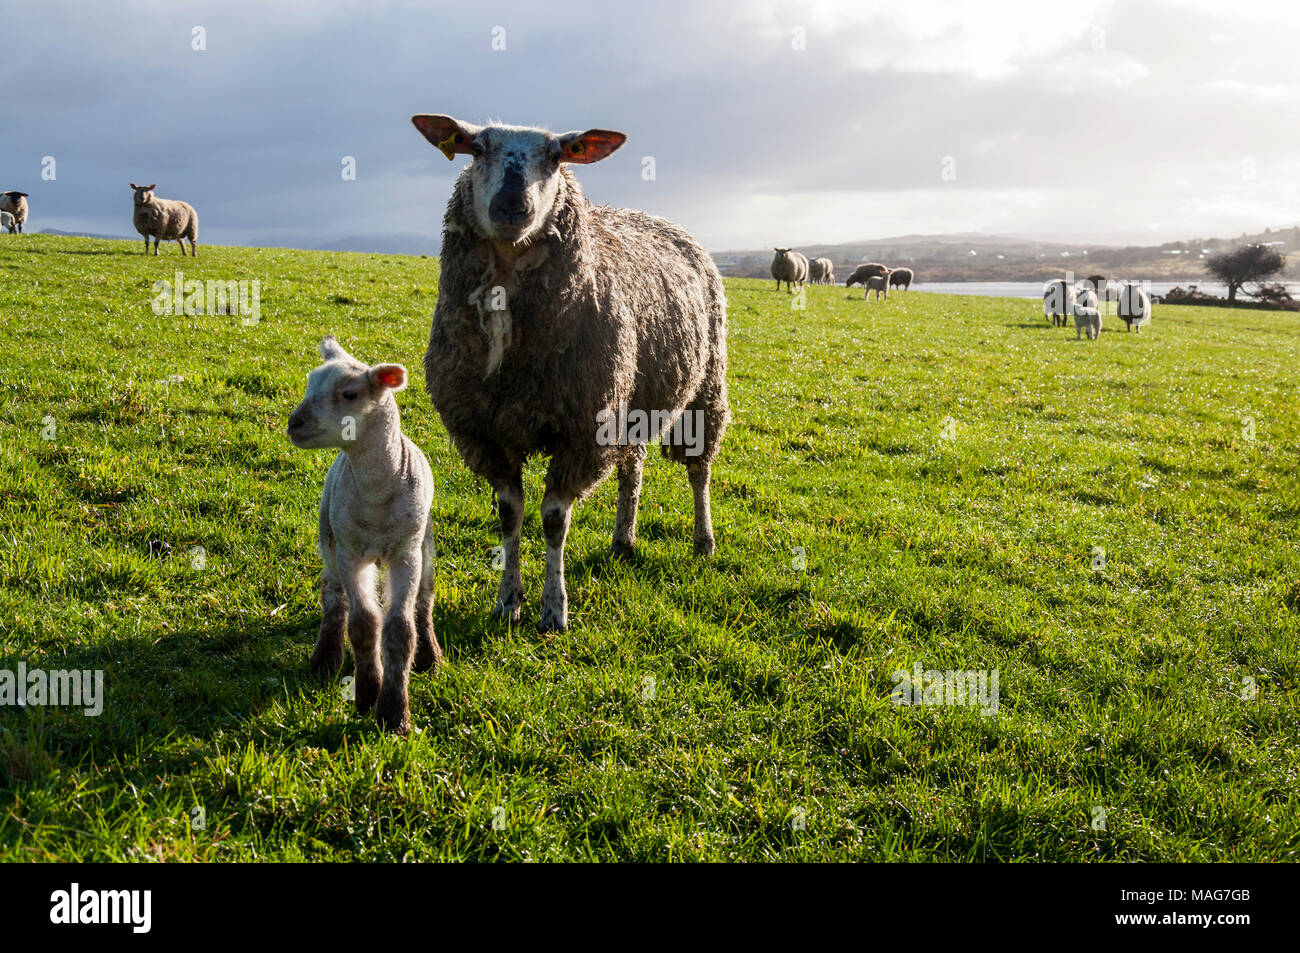 Ewe sheep and lamb in a Donegal field - Stock Image